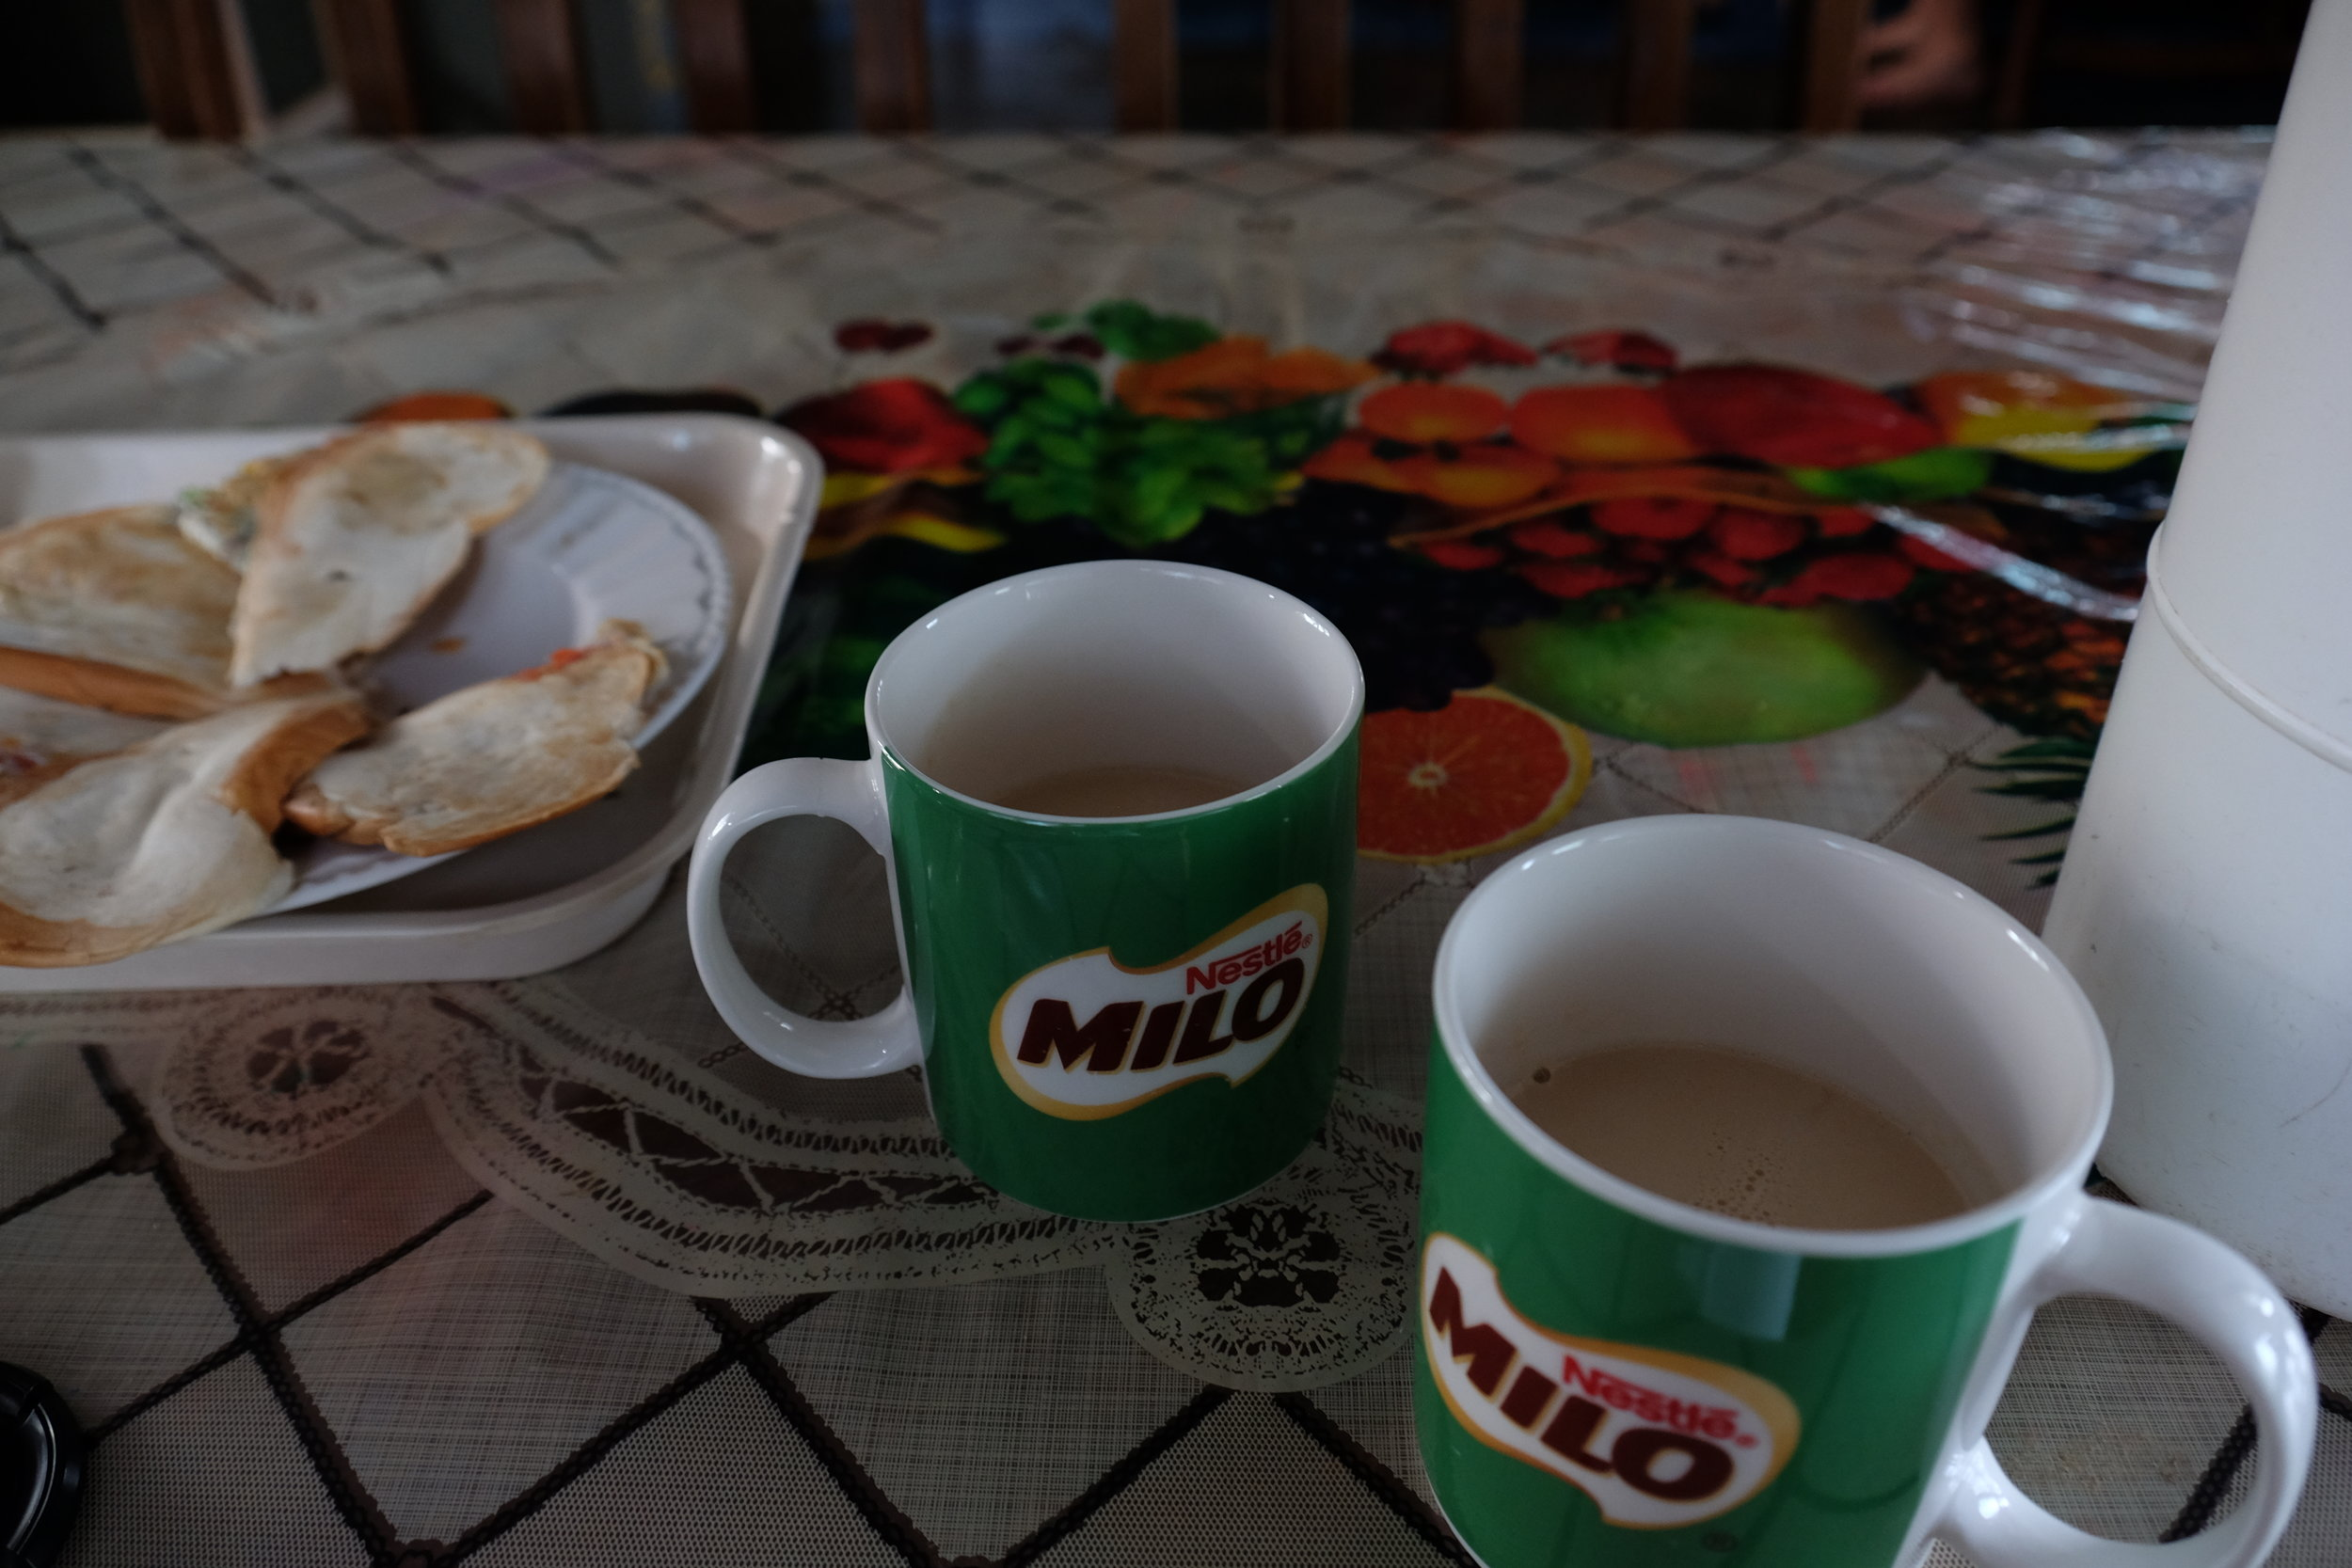 Breakfasts at the Yellow House are my favorite! Viva Cafe in Milo mugs and egg sandwiches.